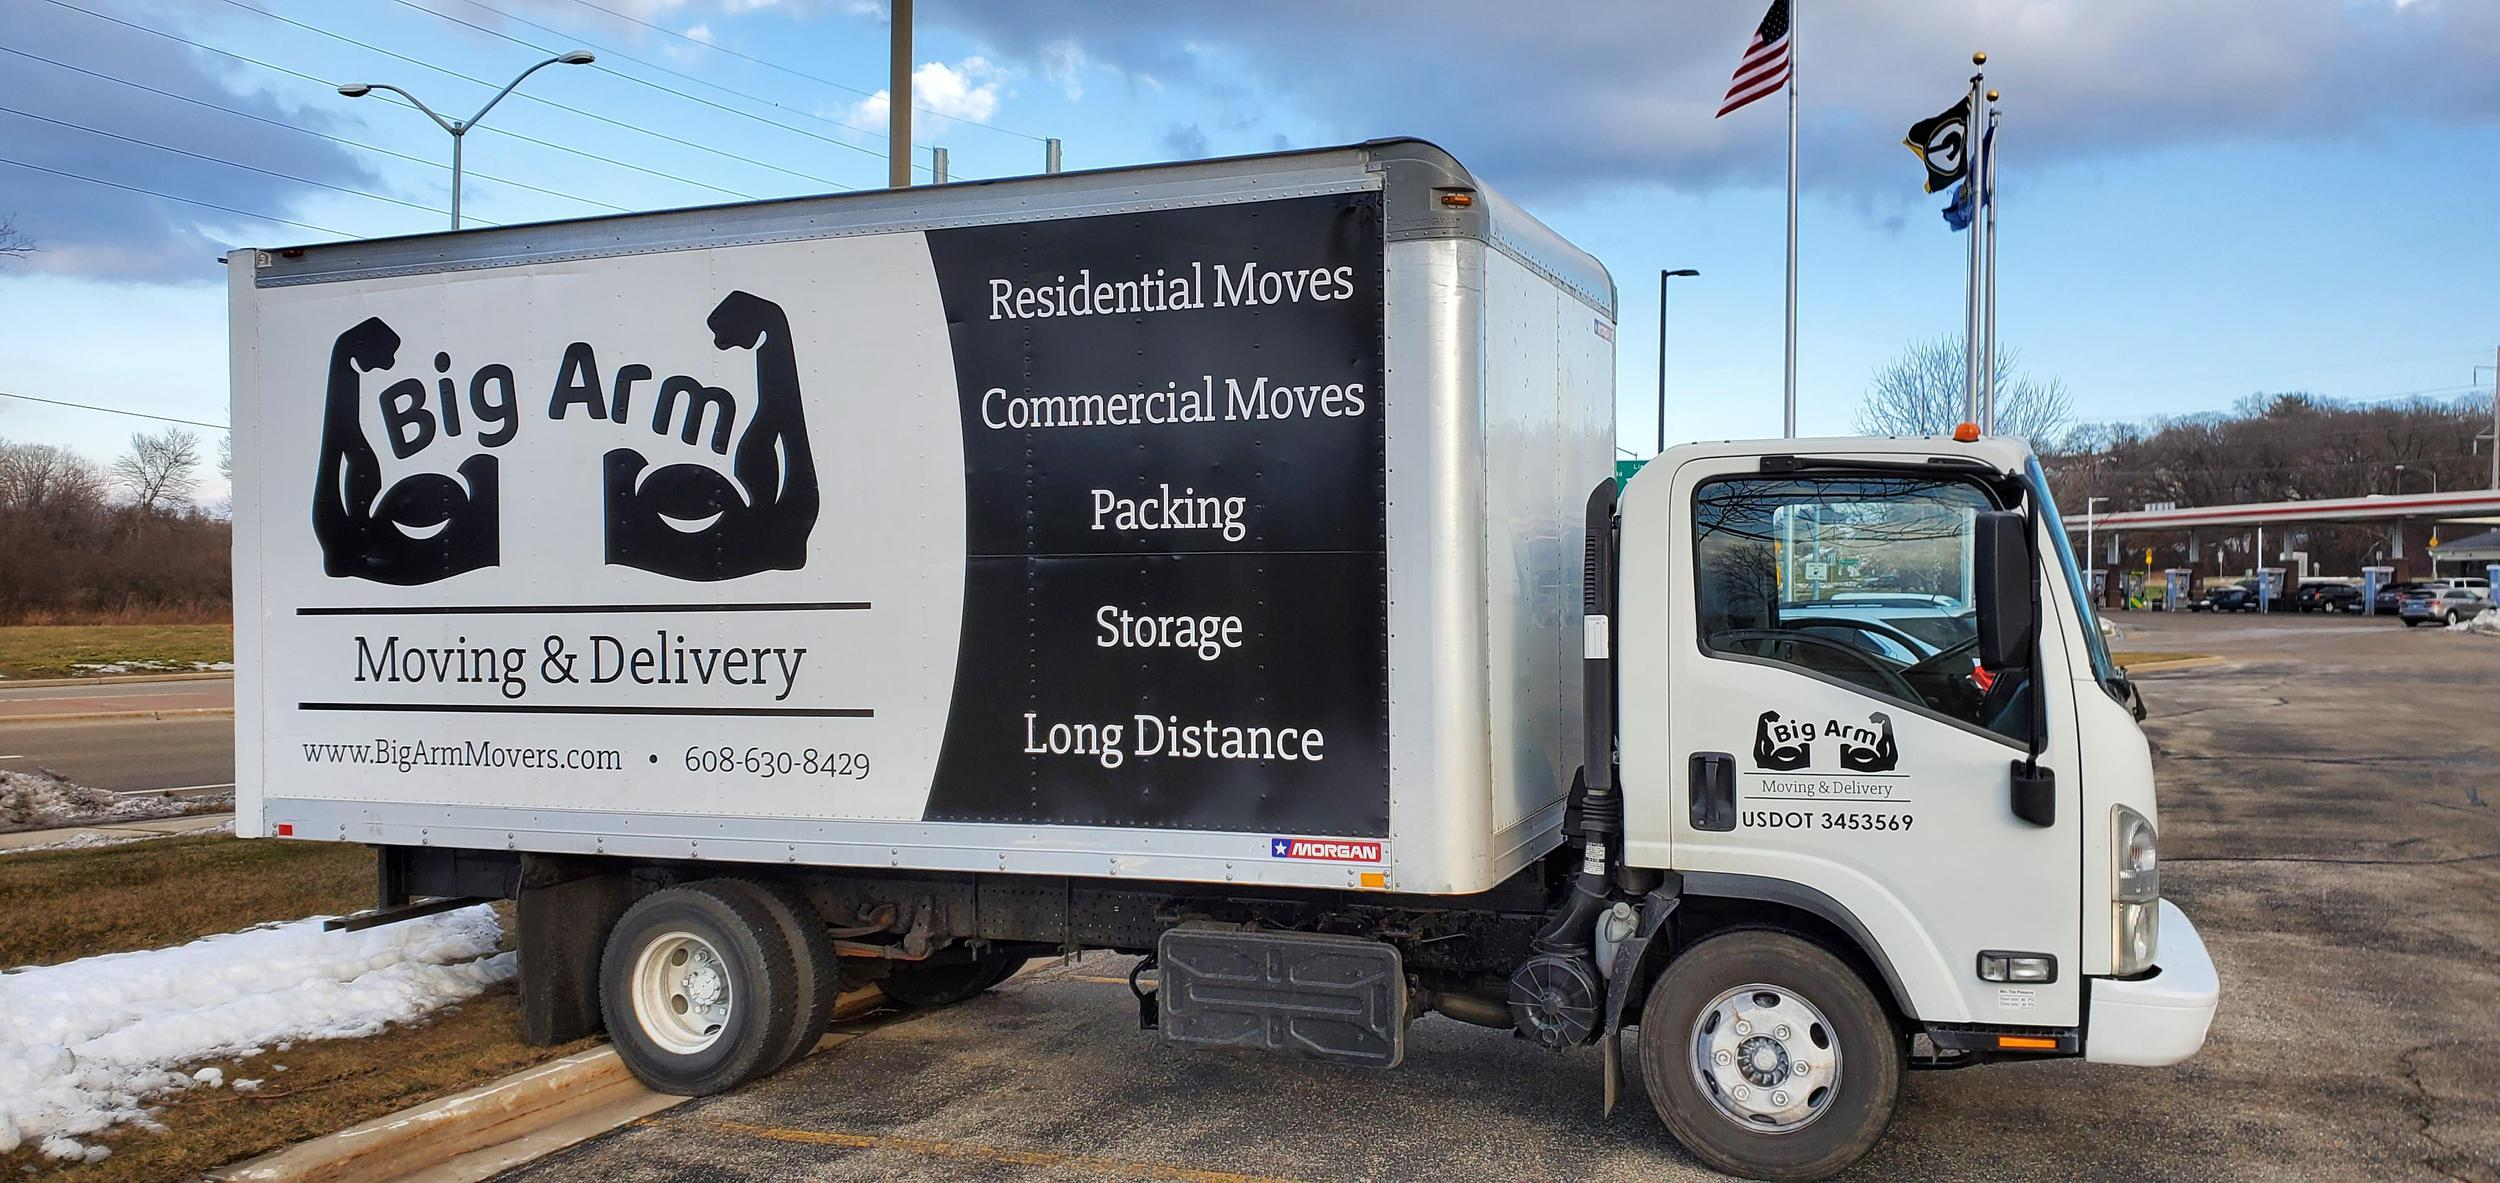 commercial moves south central, wi